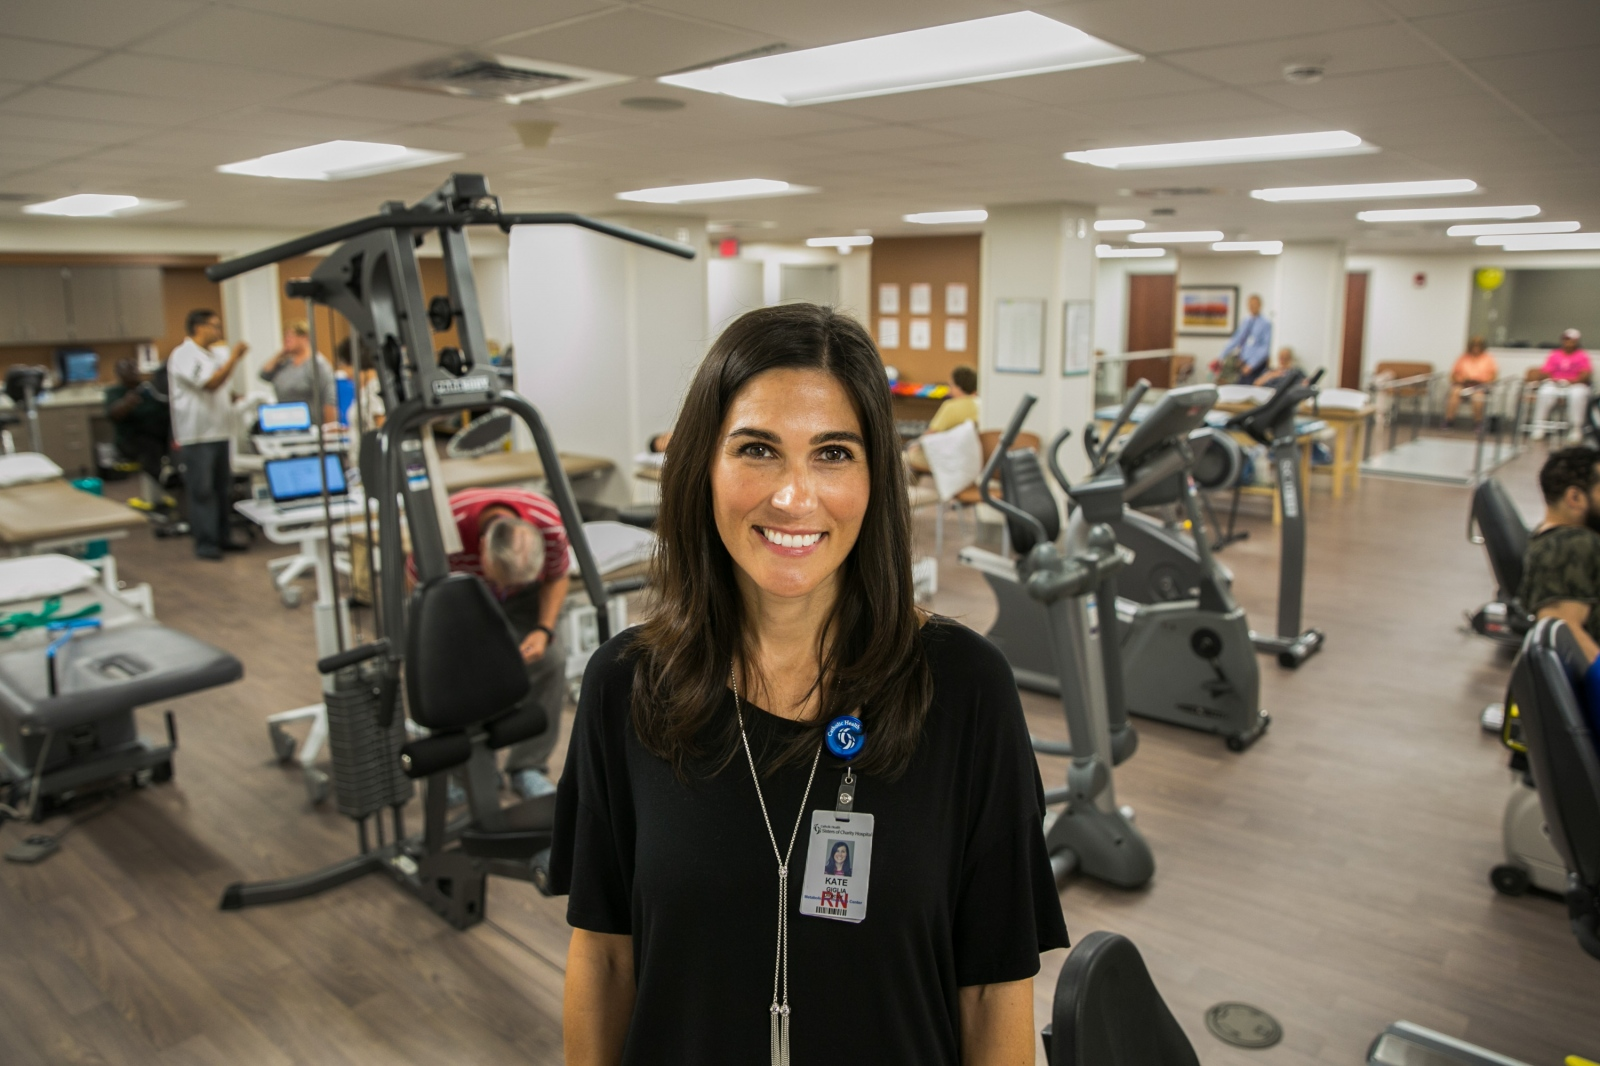 Kate Giglia, the Director of the new Sisters Metabolic Center for Wellness on the St. Joseph Campus in Cheektowaga, N.Y.